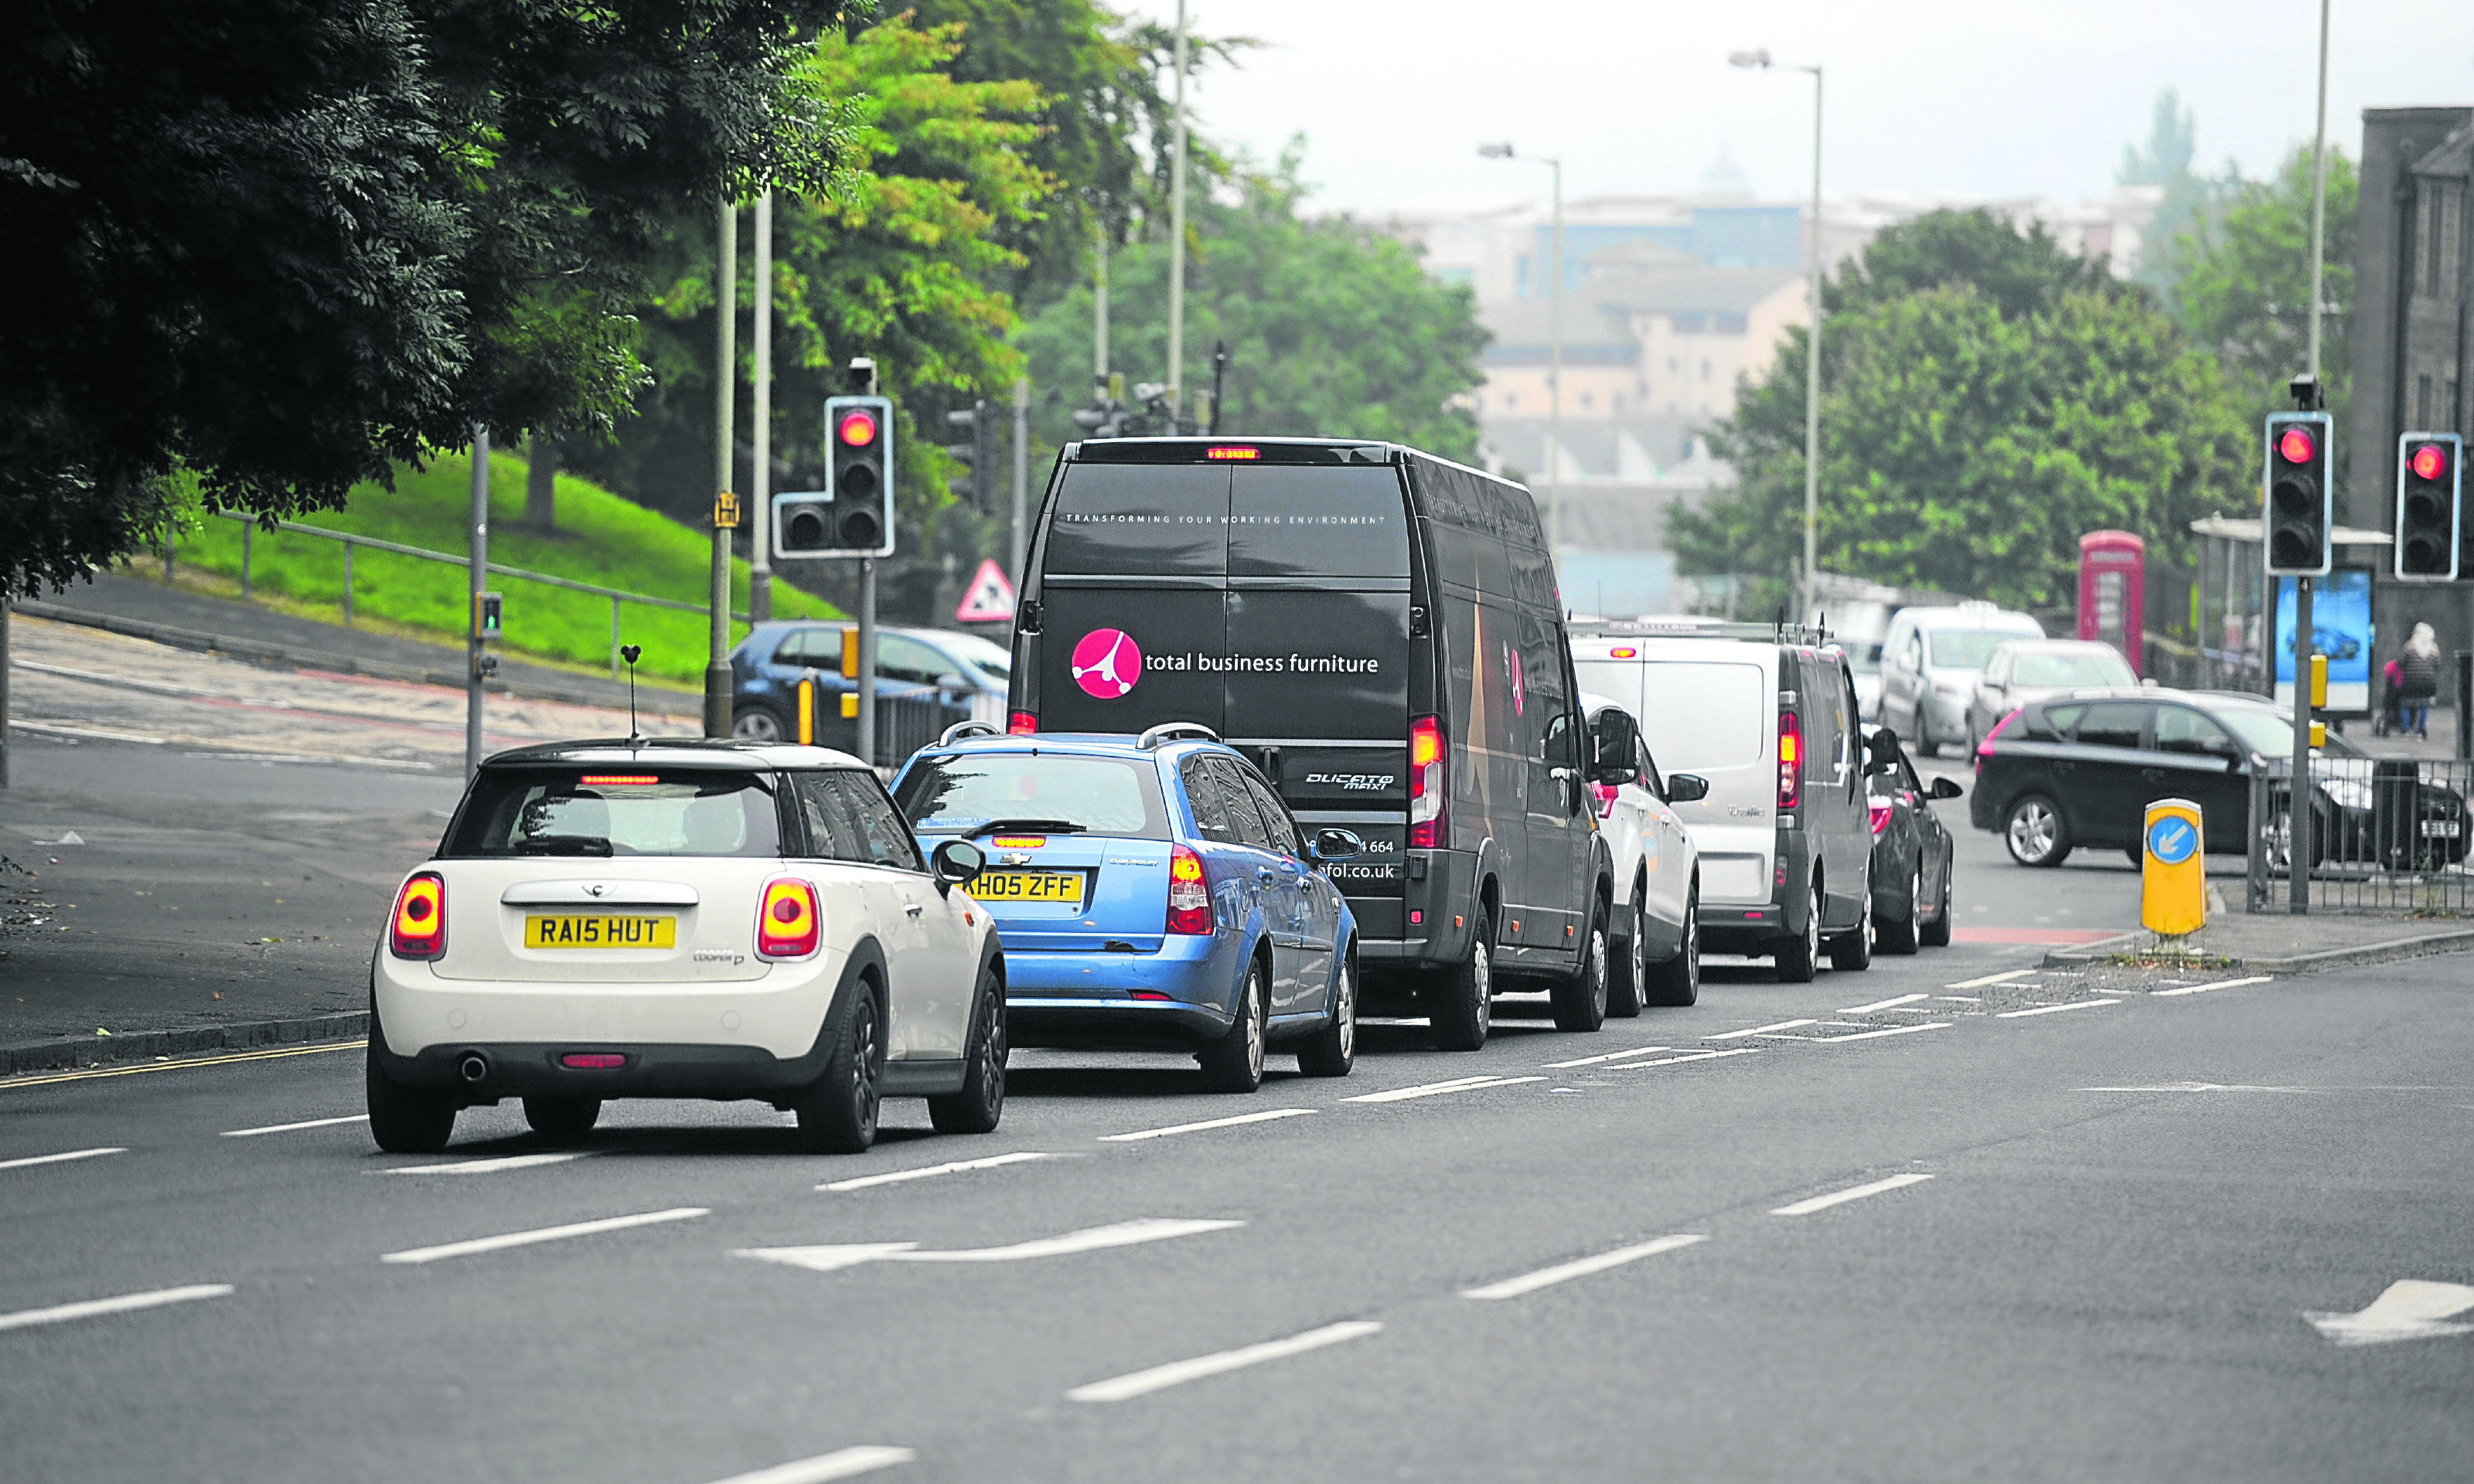 High volumes of traffic have been blamed for poor air quality on Lochee Road.